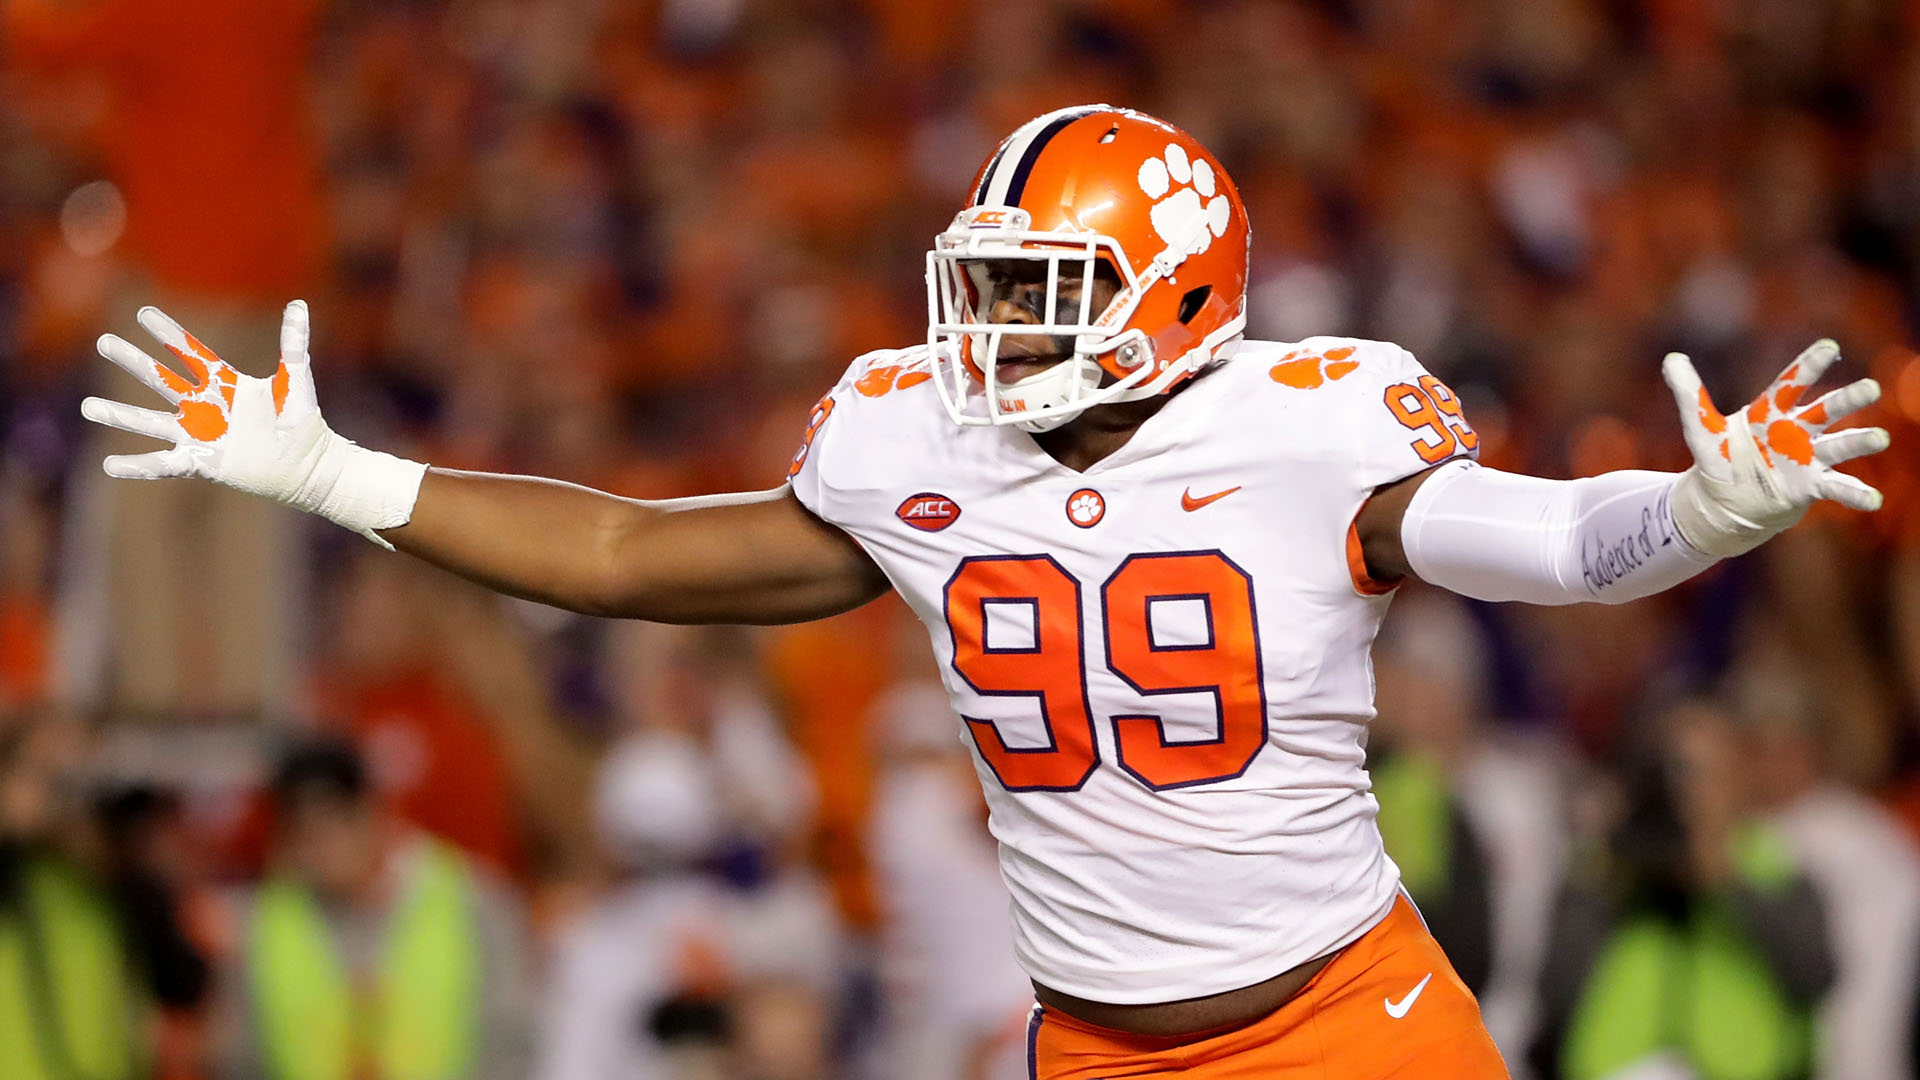 Dabo Swinney Reveals First Round Prospect Clelin Ferrell